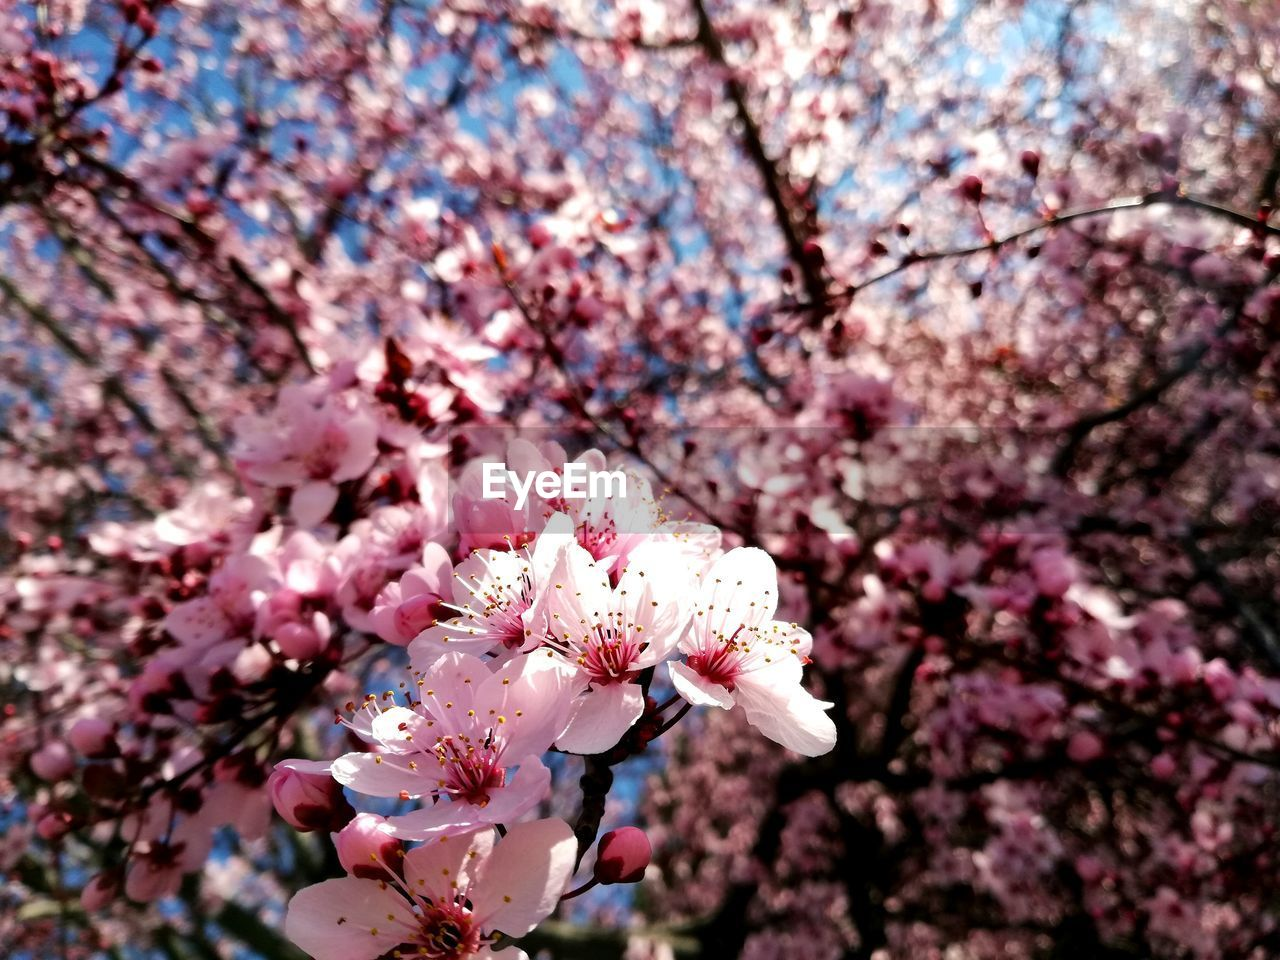 flowering plant, flower, plant, fragility, freshness, vulnerability, tree, beauty in nature, blossom, growth, springtime, pink color, branch, cherry blossom, nature, close-up, petal, day, cherry tree, no people, flower head, outdoors, plum blossom, pollen, spring, bunch of flowers